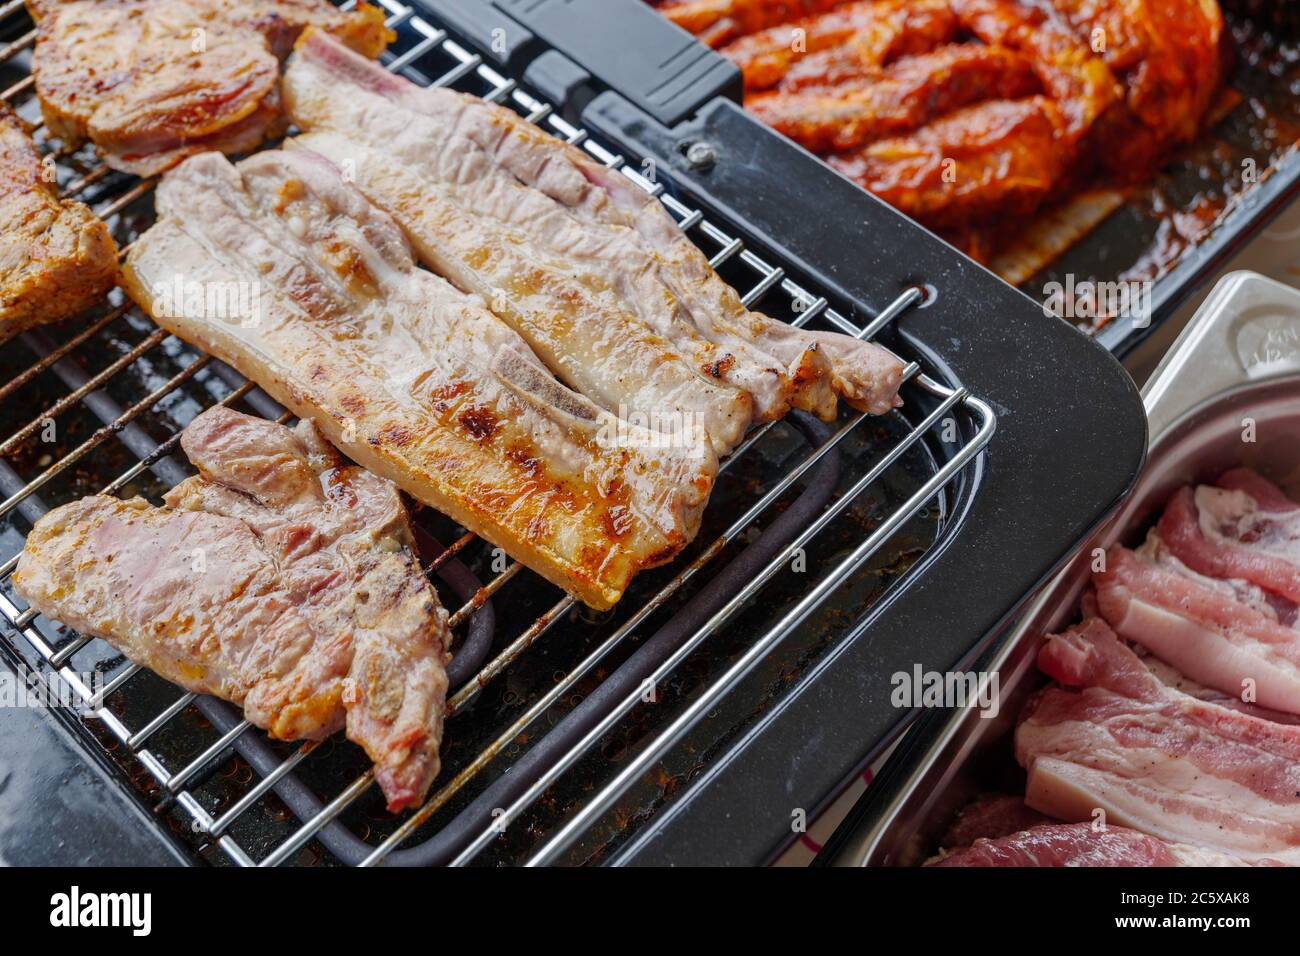 Top View Of Piece Of Barbecue Pork Belly And Grilled Steak On Electric Grill Griddle Surrounded With Raw Meat On Side Stock Photo Alamy